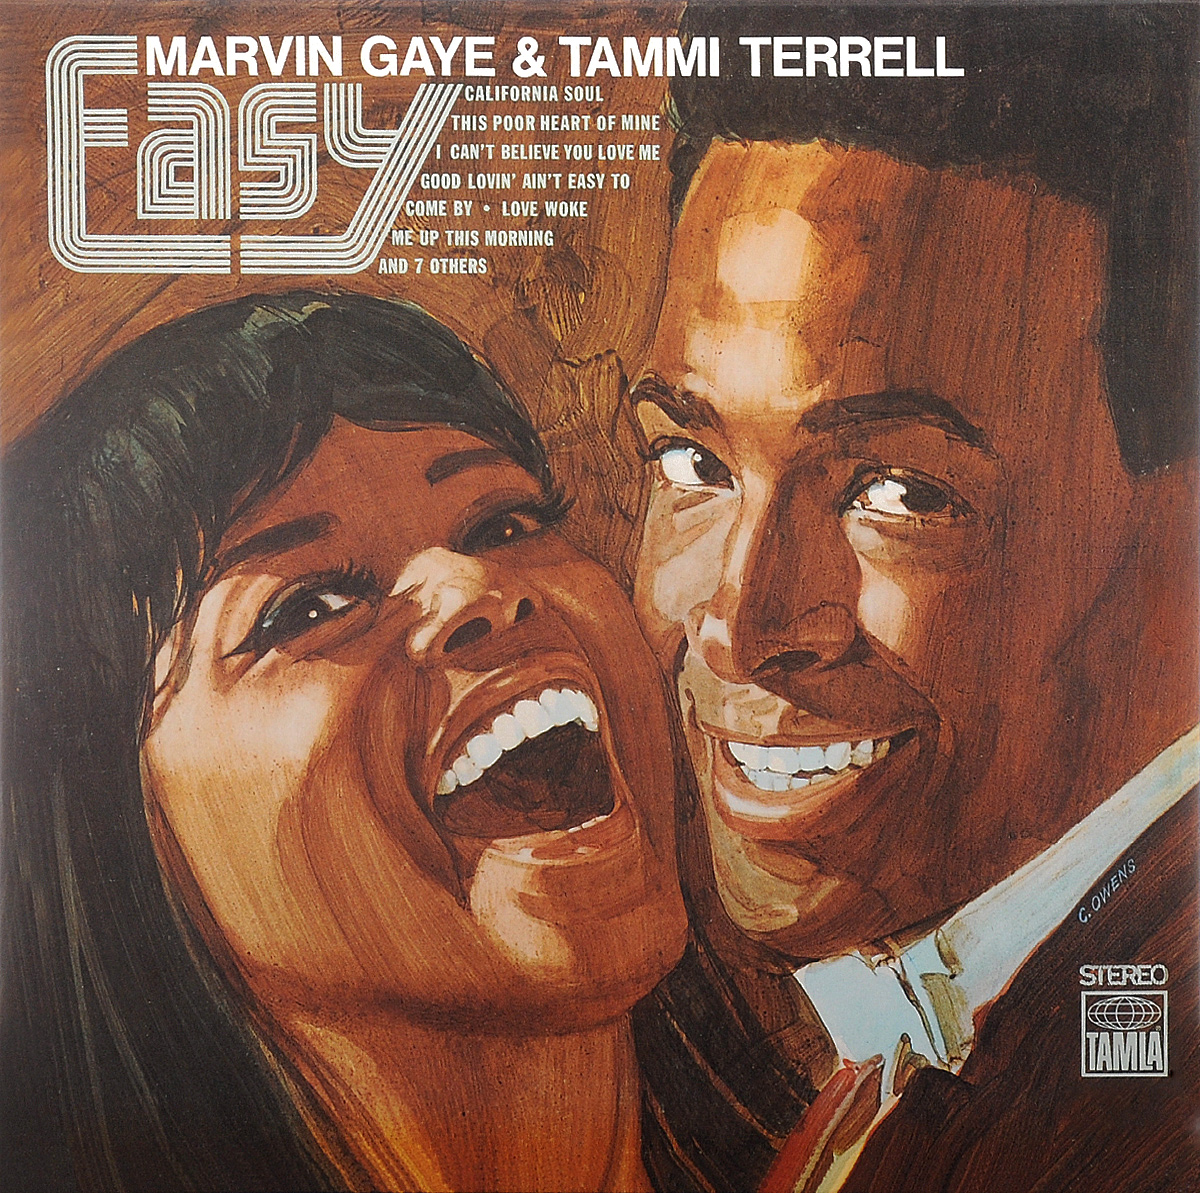 Марвин Гэй,Тамми Тэррелл Marvin Gaye & Tammi Terrell. Easy (LP) coomax c7 4000mah li ion battery mobile power source bank w led for iphone more green